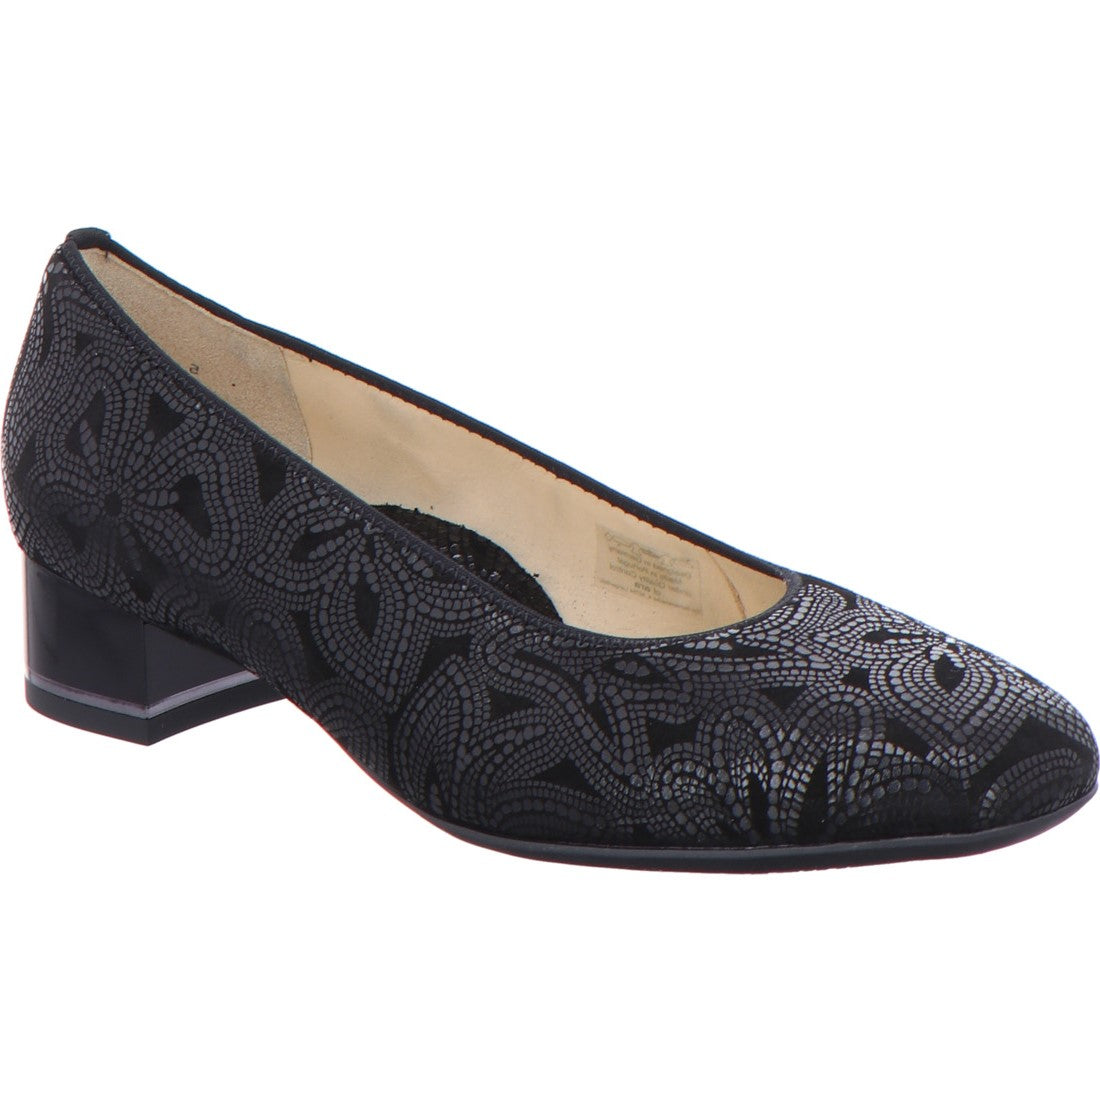 Graz Low Heel Court Shoe